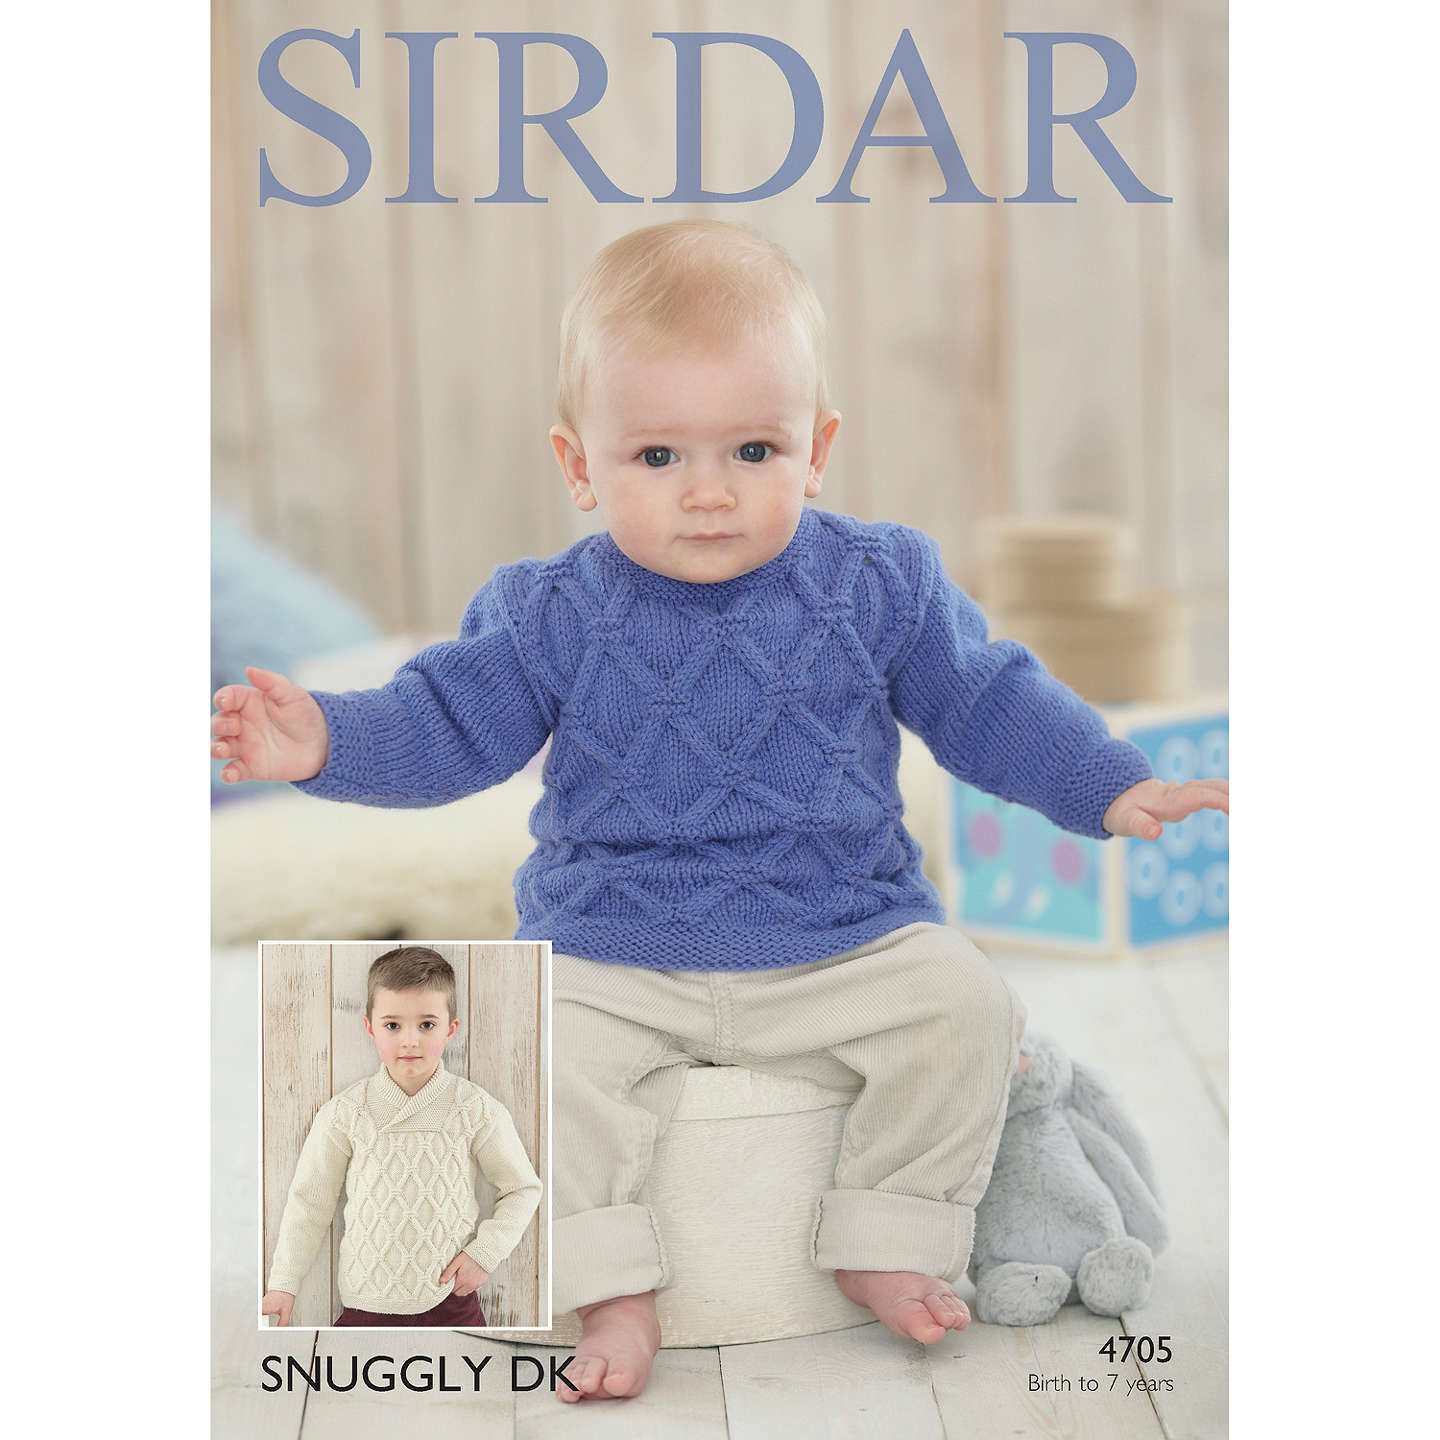 Sirdar Snuggly DK Baby and Child Jumper Knitting Pattern, 4705 at ...